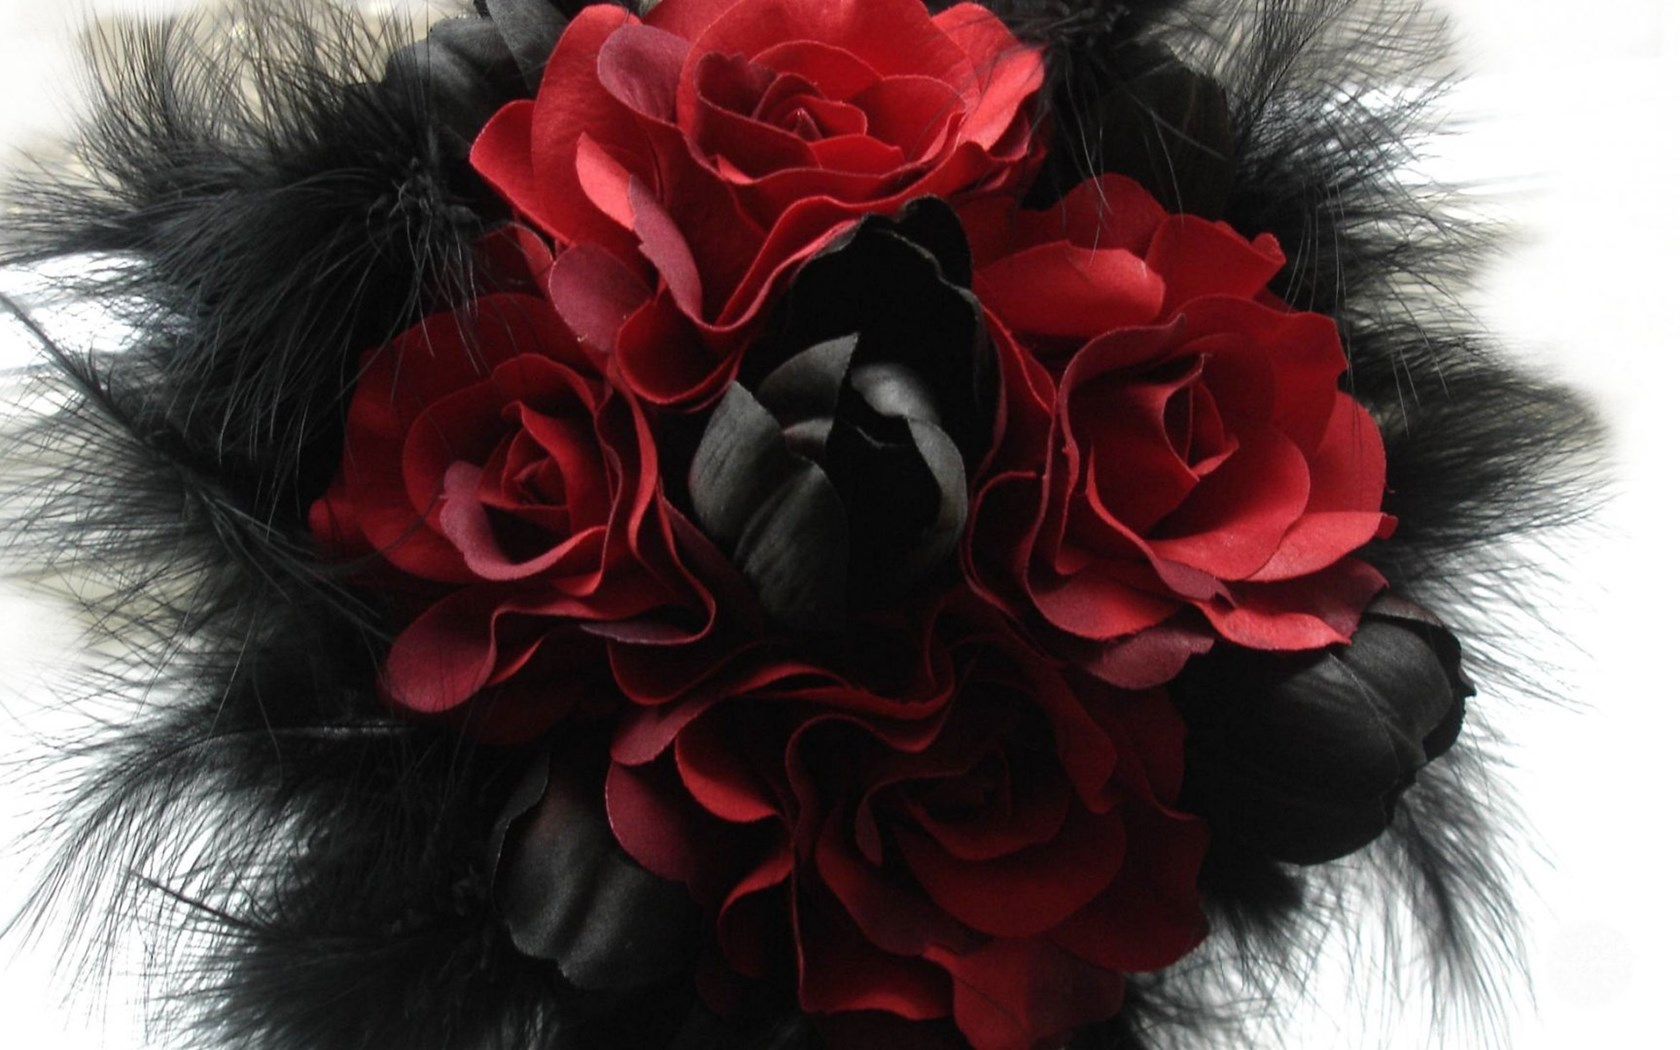 Wallpaper gothic abstract red rose black white - Black and red rose wallpaper ...